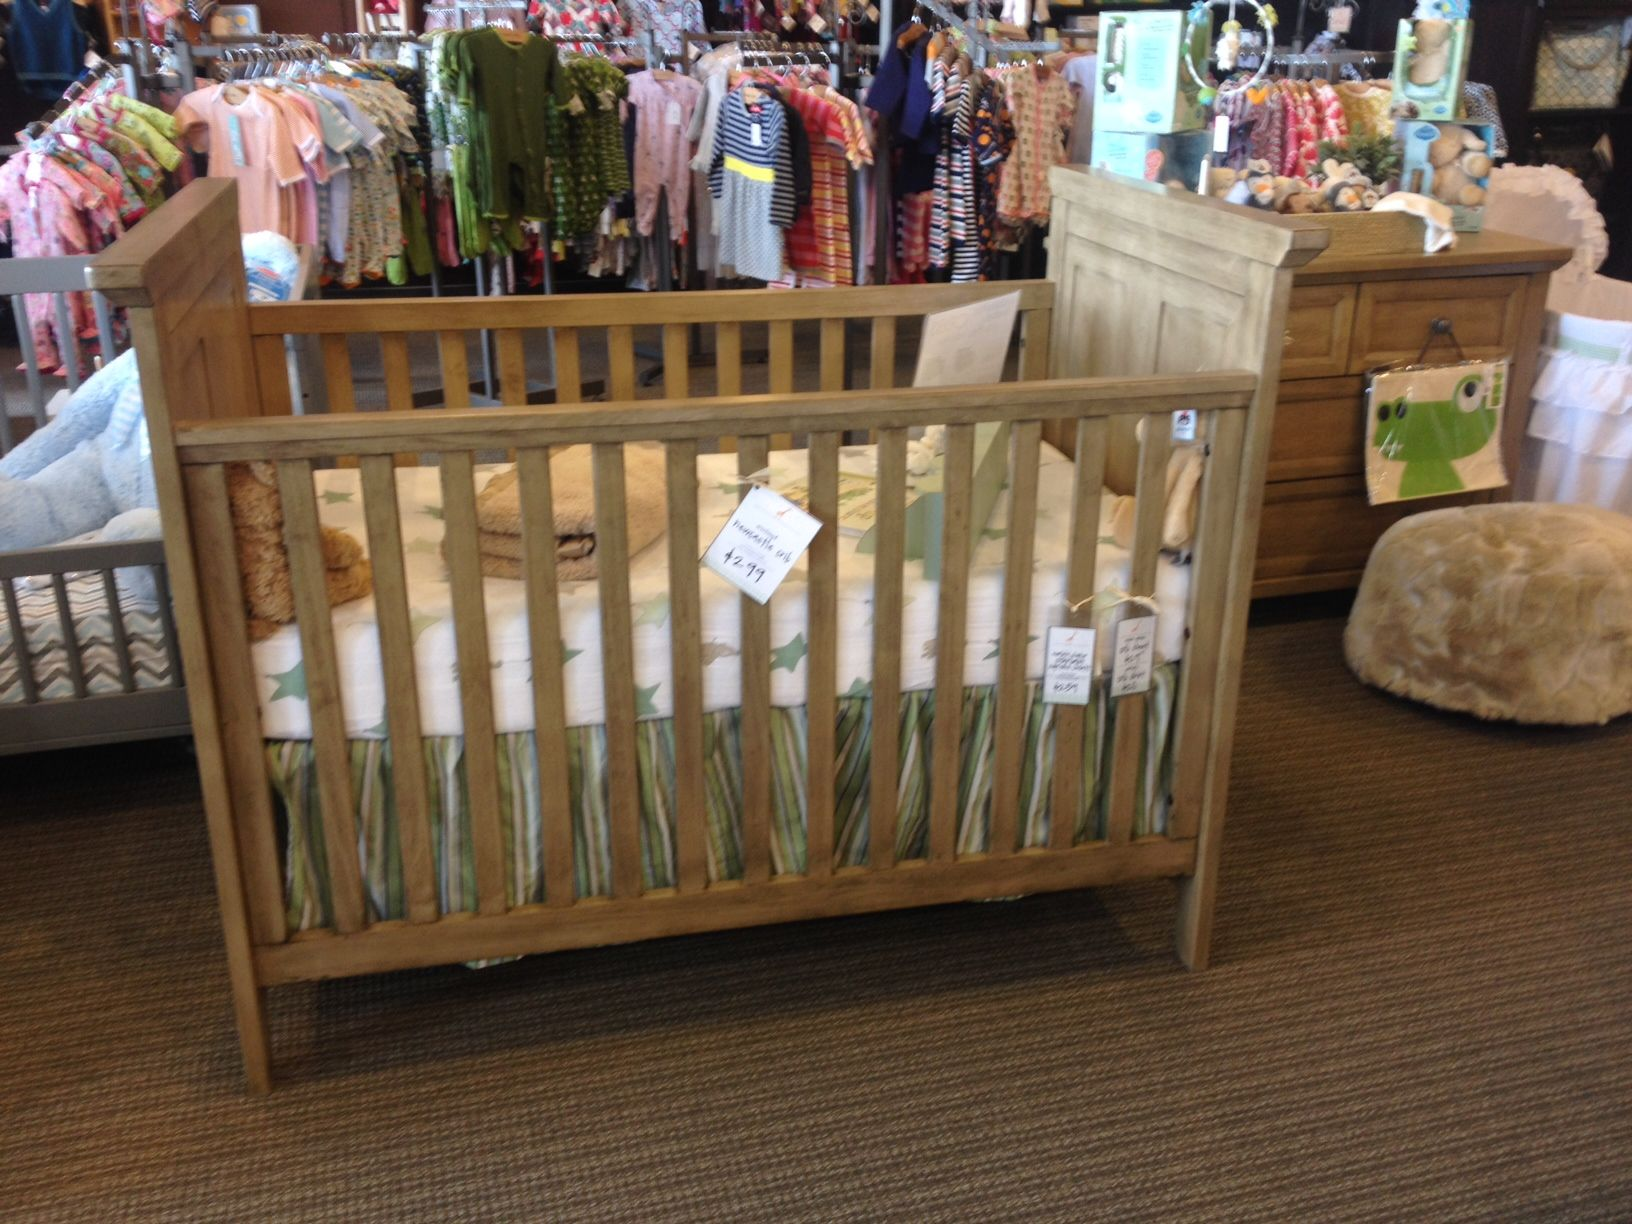 lovekidszone be the for waverly westwood and convertible any in on finish your suit size best designed design may crib meant assortment is tuscan baby nursery intended to cribs a contempary